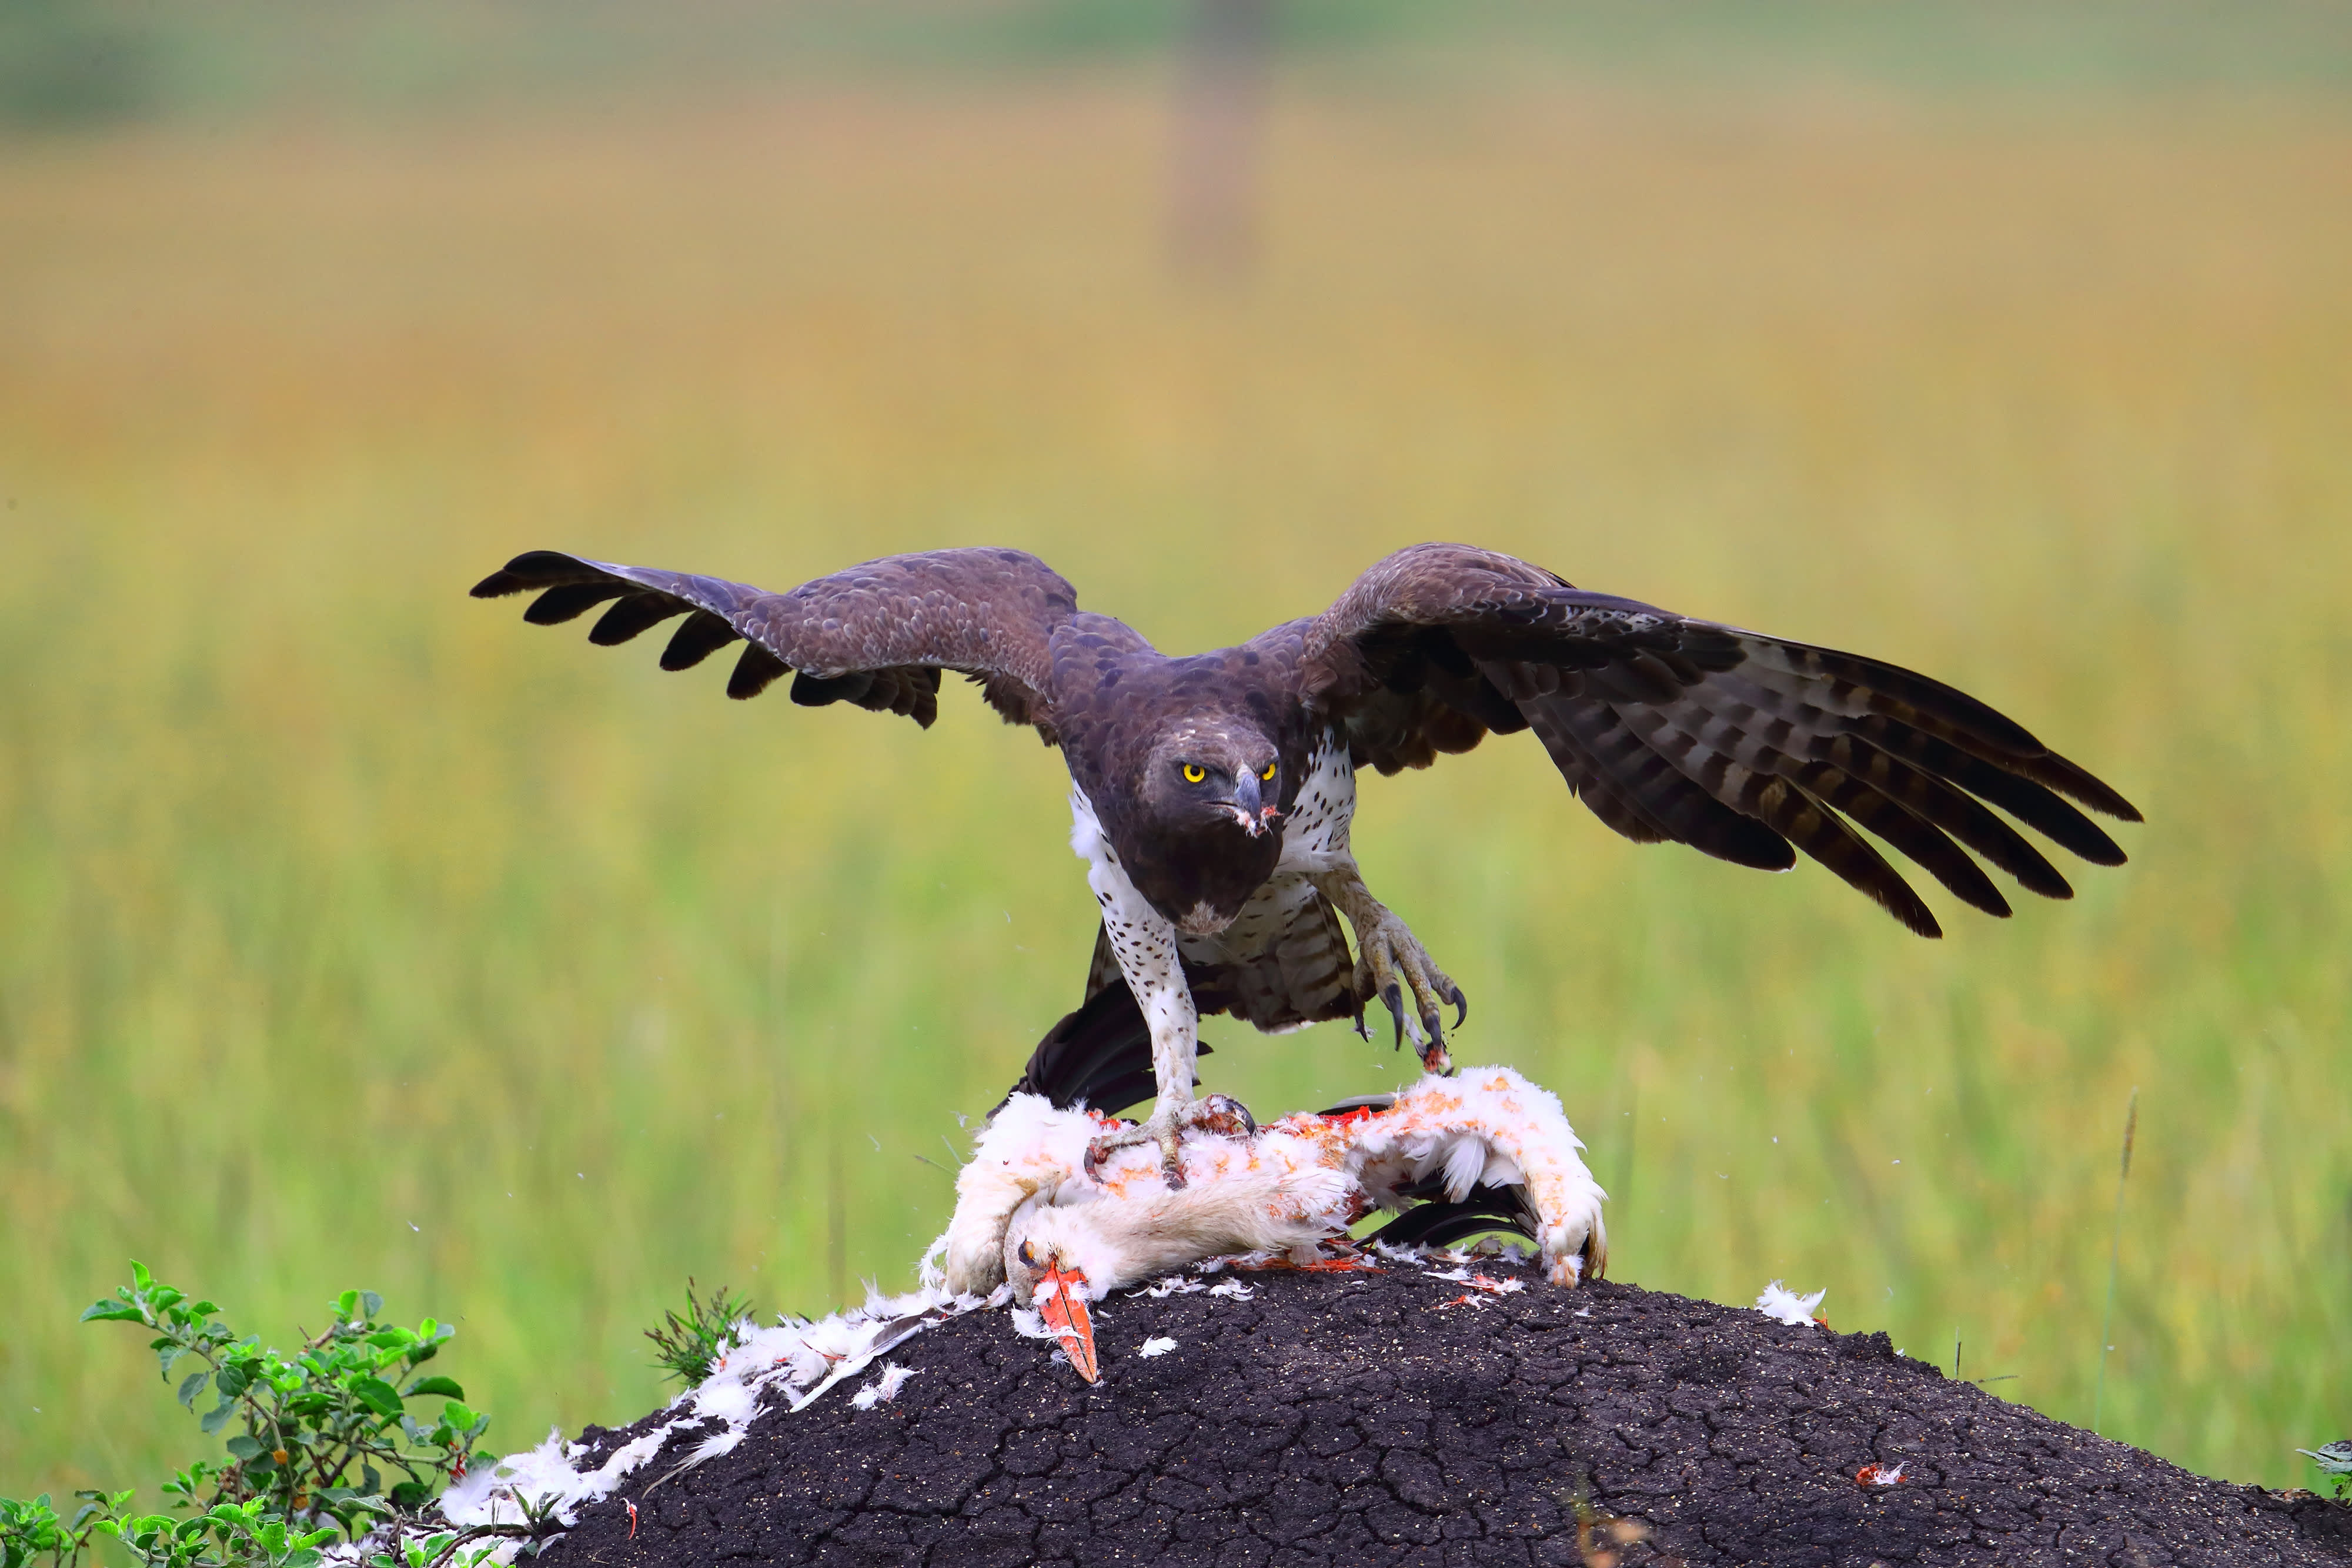 Martial Eagle feeding on a White Stork